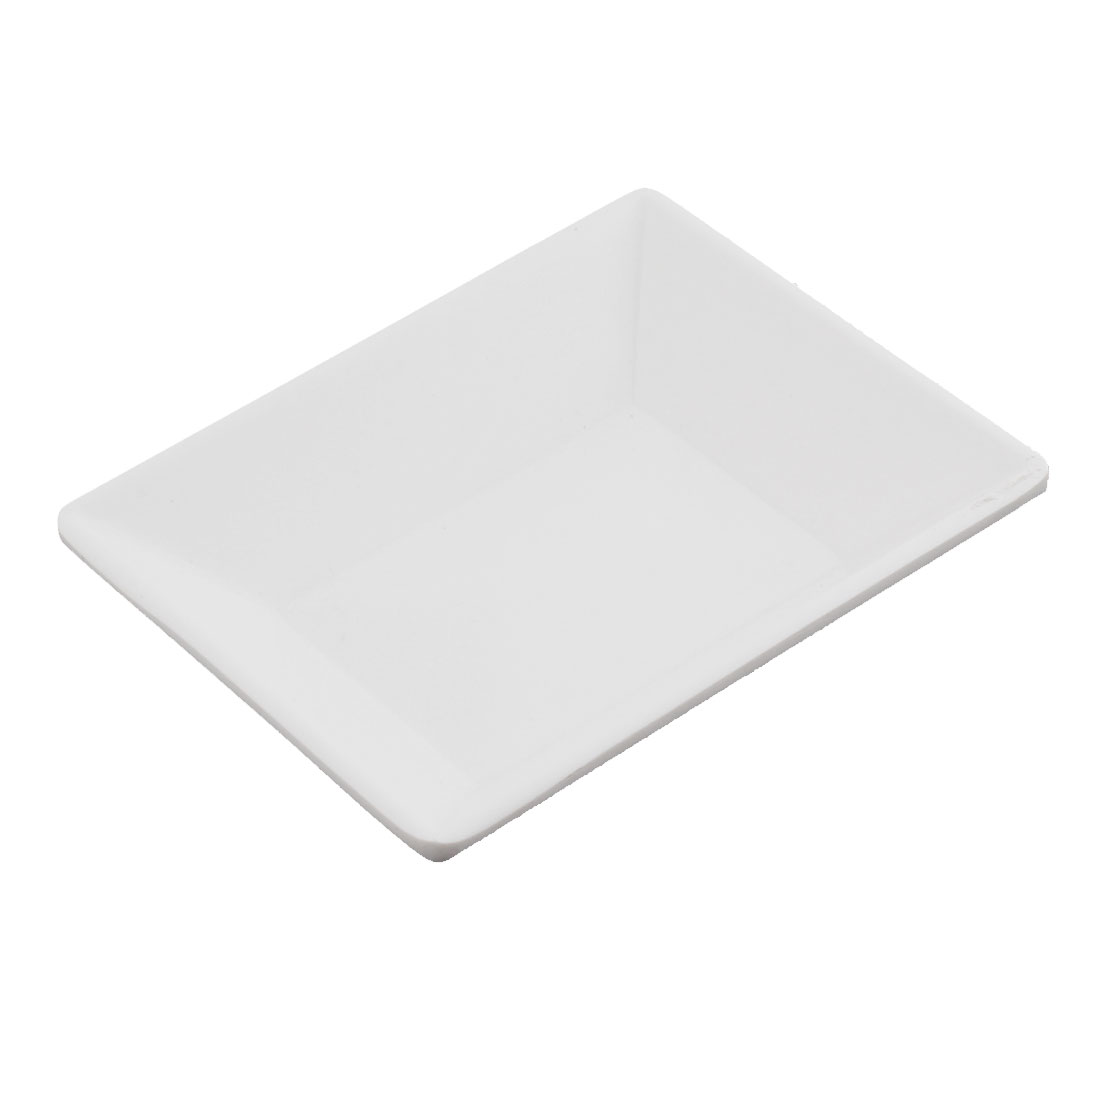 Rectangle Shape Sushi Soy Sauce Dipping Dish Plate 93 x 80 x 29mm